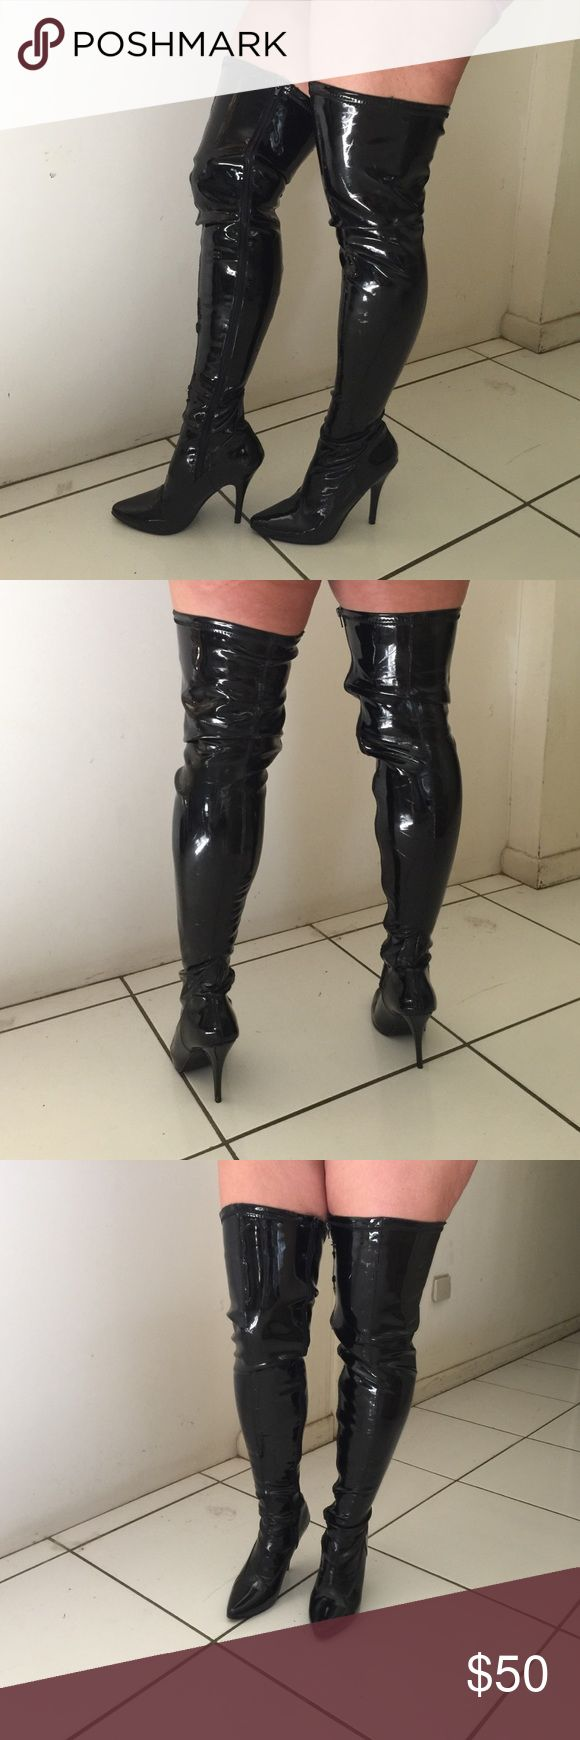 Thigh high black patent leather  boots Thigh high black patent leather  boots Pleaser Shoes Over the Knee Boots